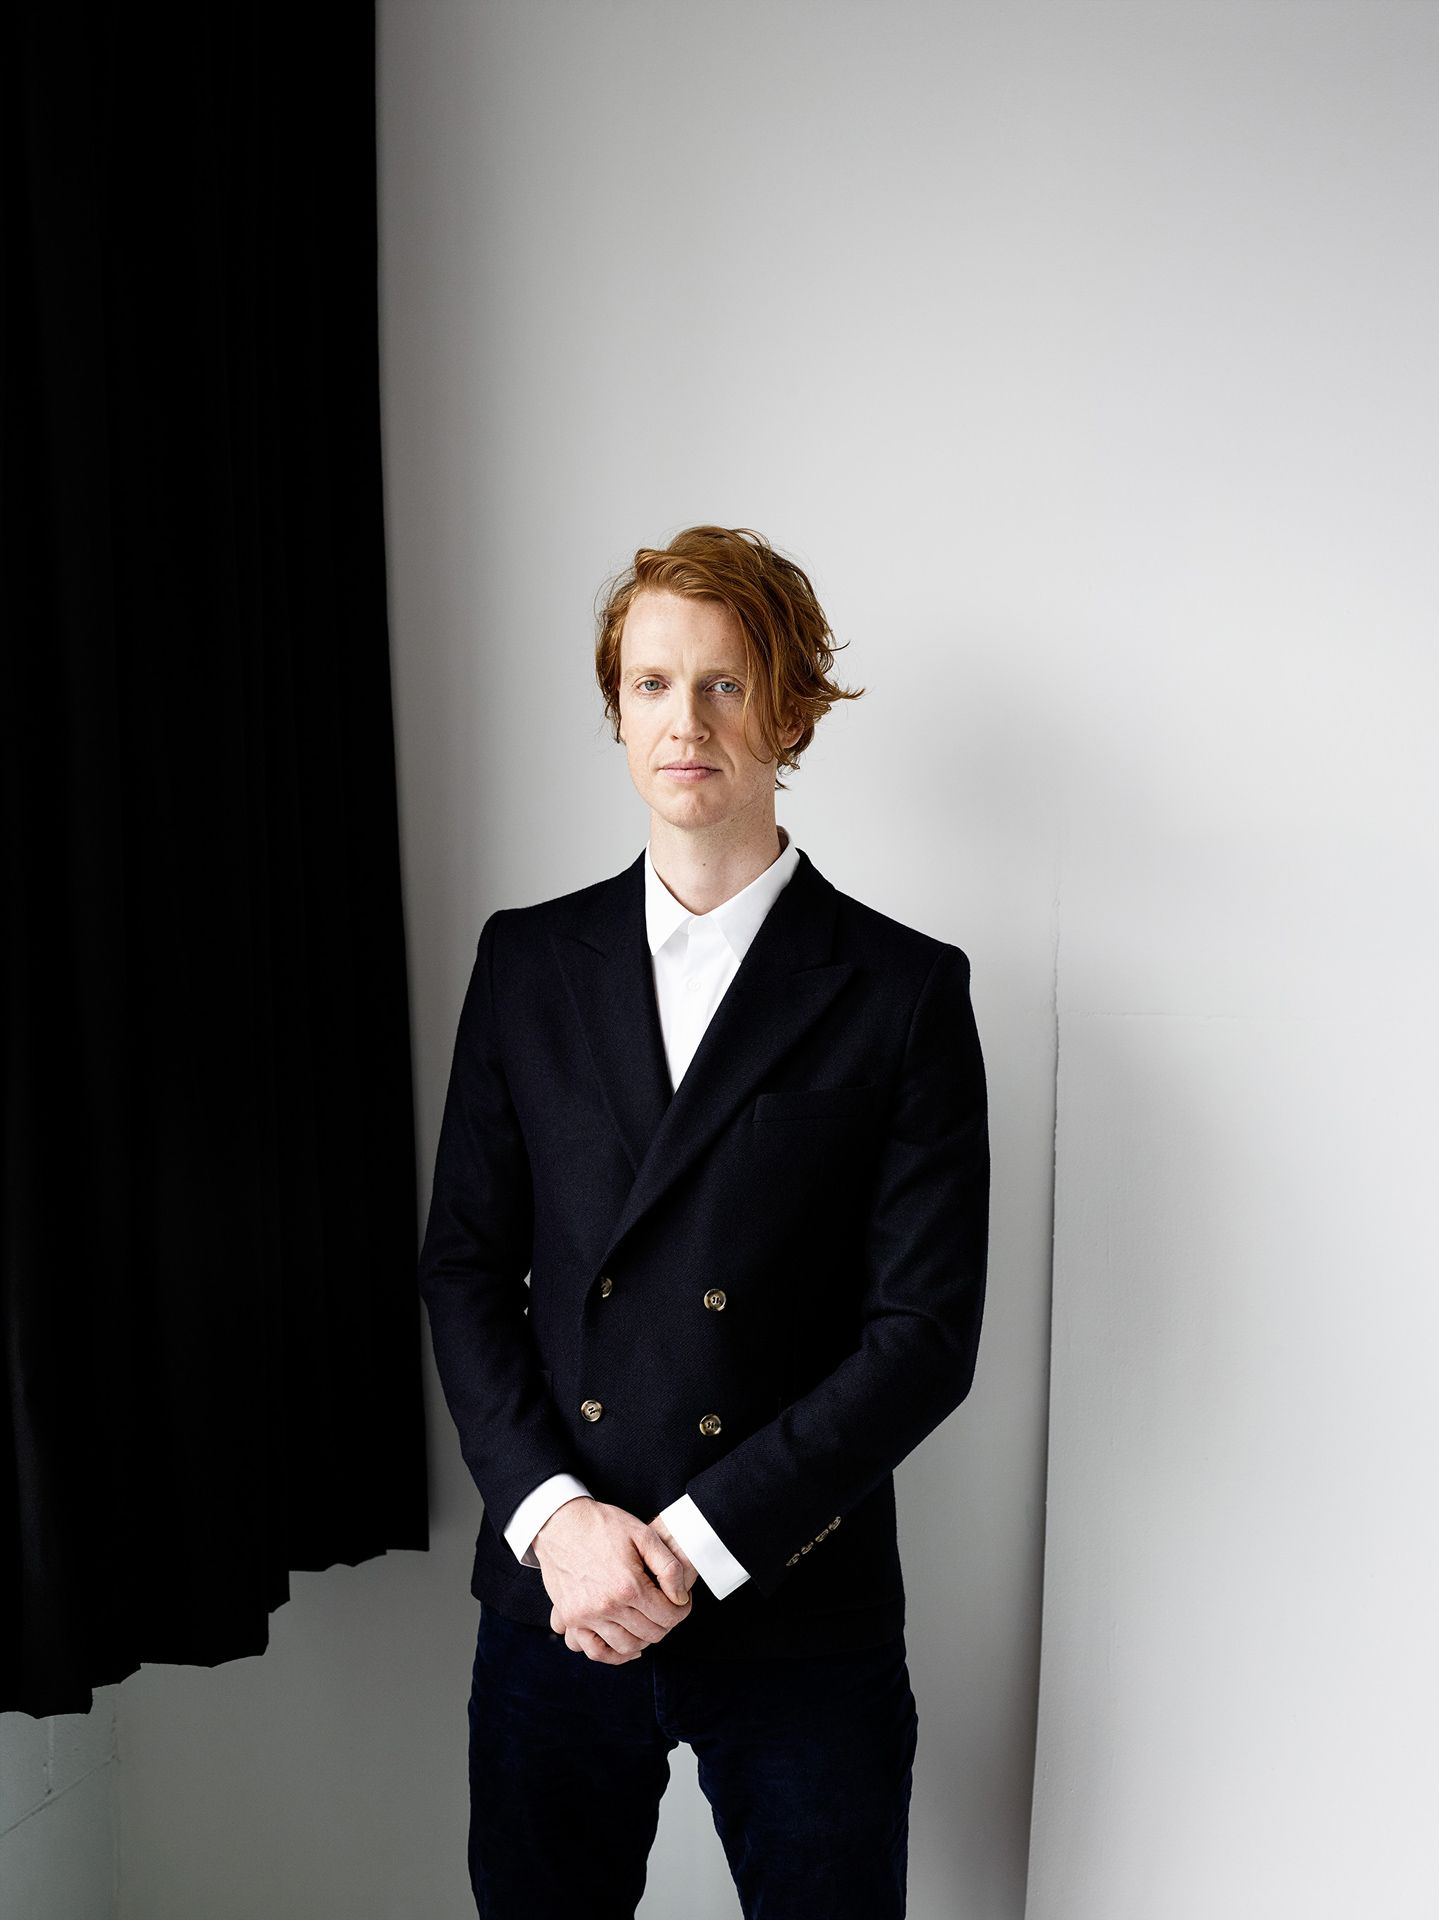 simple portrait of Richard Reed Parry ginger male standing looking at camera by Guillaume Simoneau